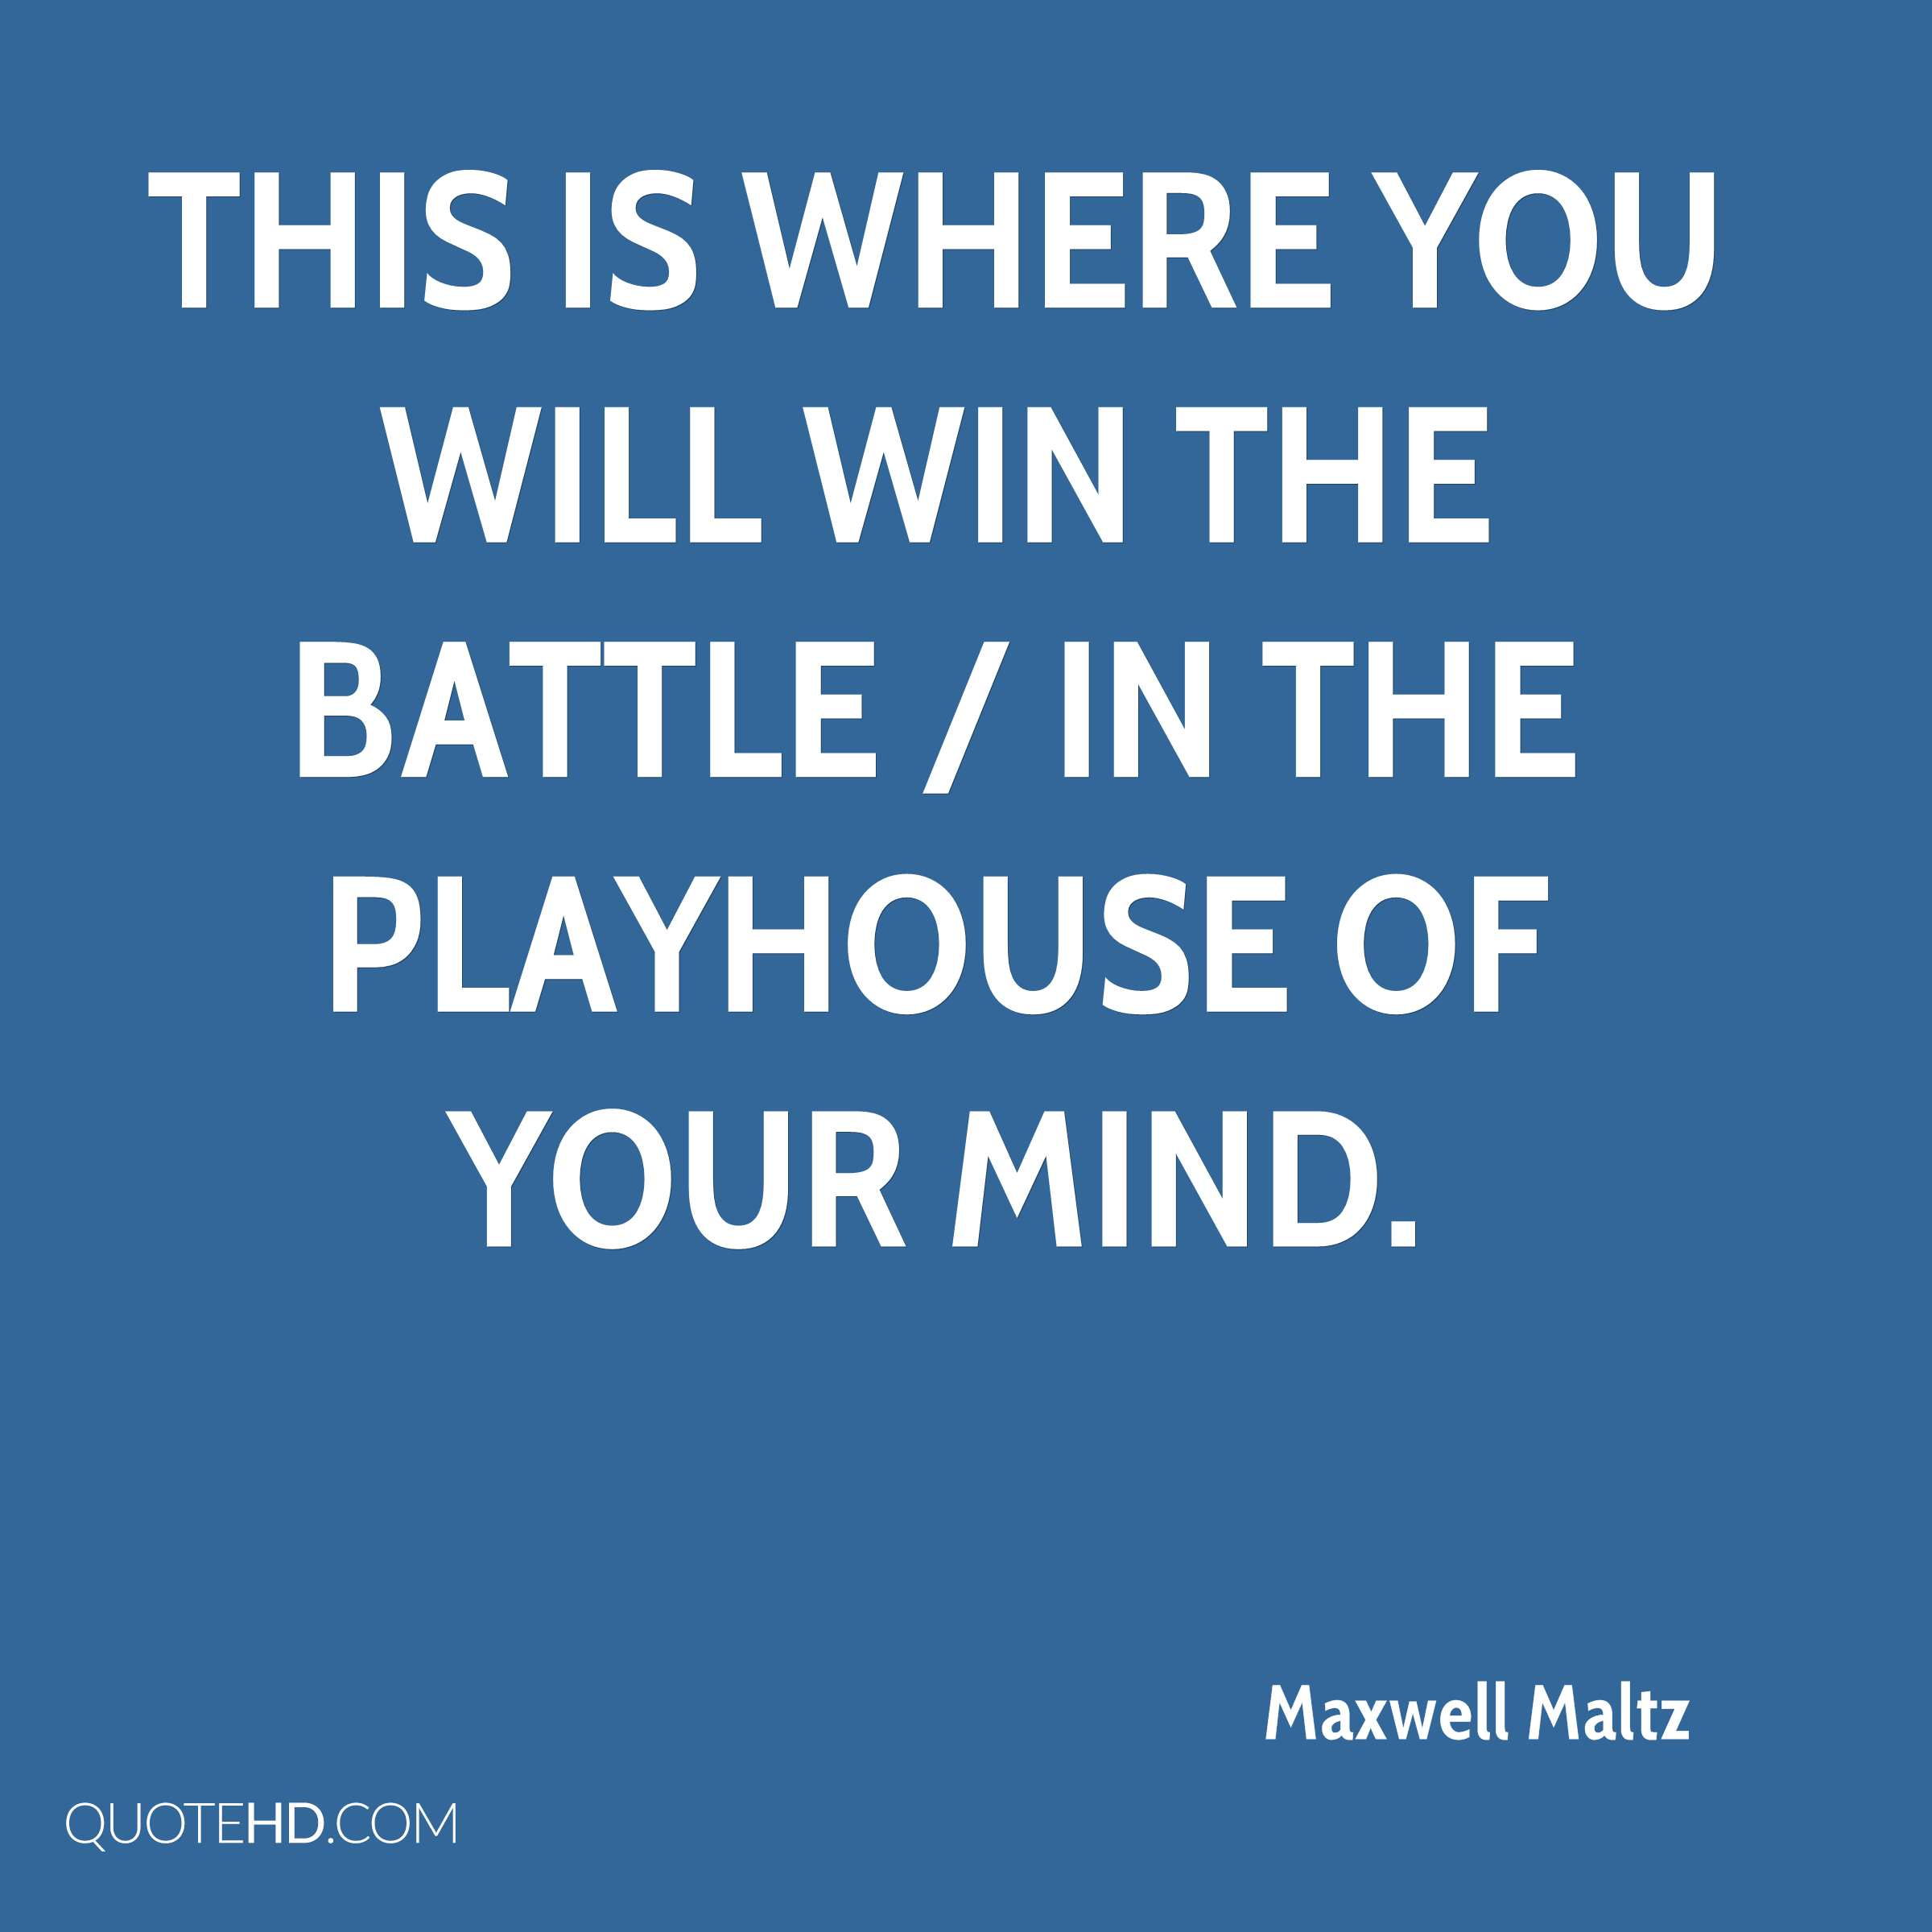 This is where you will win the battle / in the playhouse of your mind.